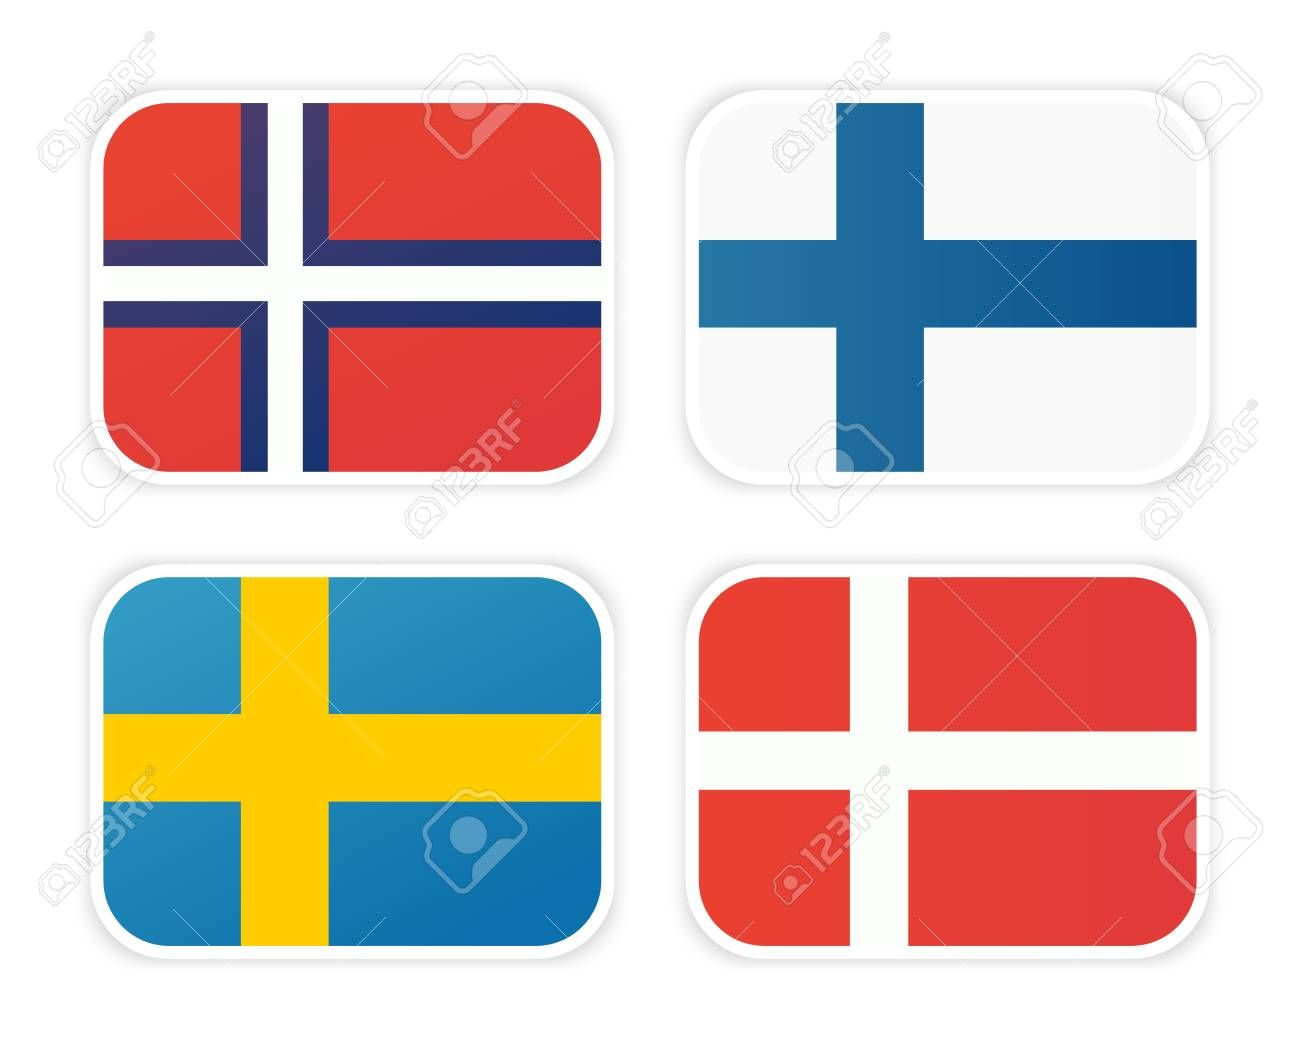 Icons Of Scandinavian Flags Isolated On White Background Vector Symbol Of Norway Sweden Finland And Denmark Illustration Af In 2020 Scandinavian Finland Novelty